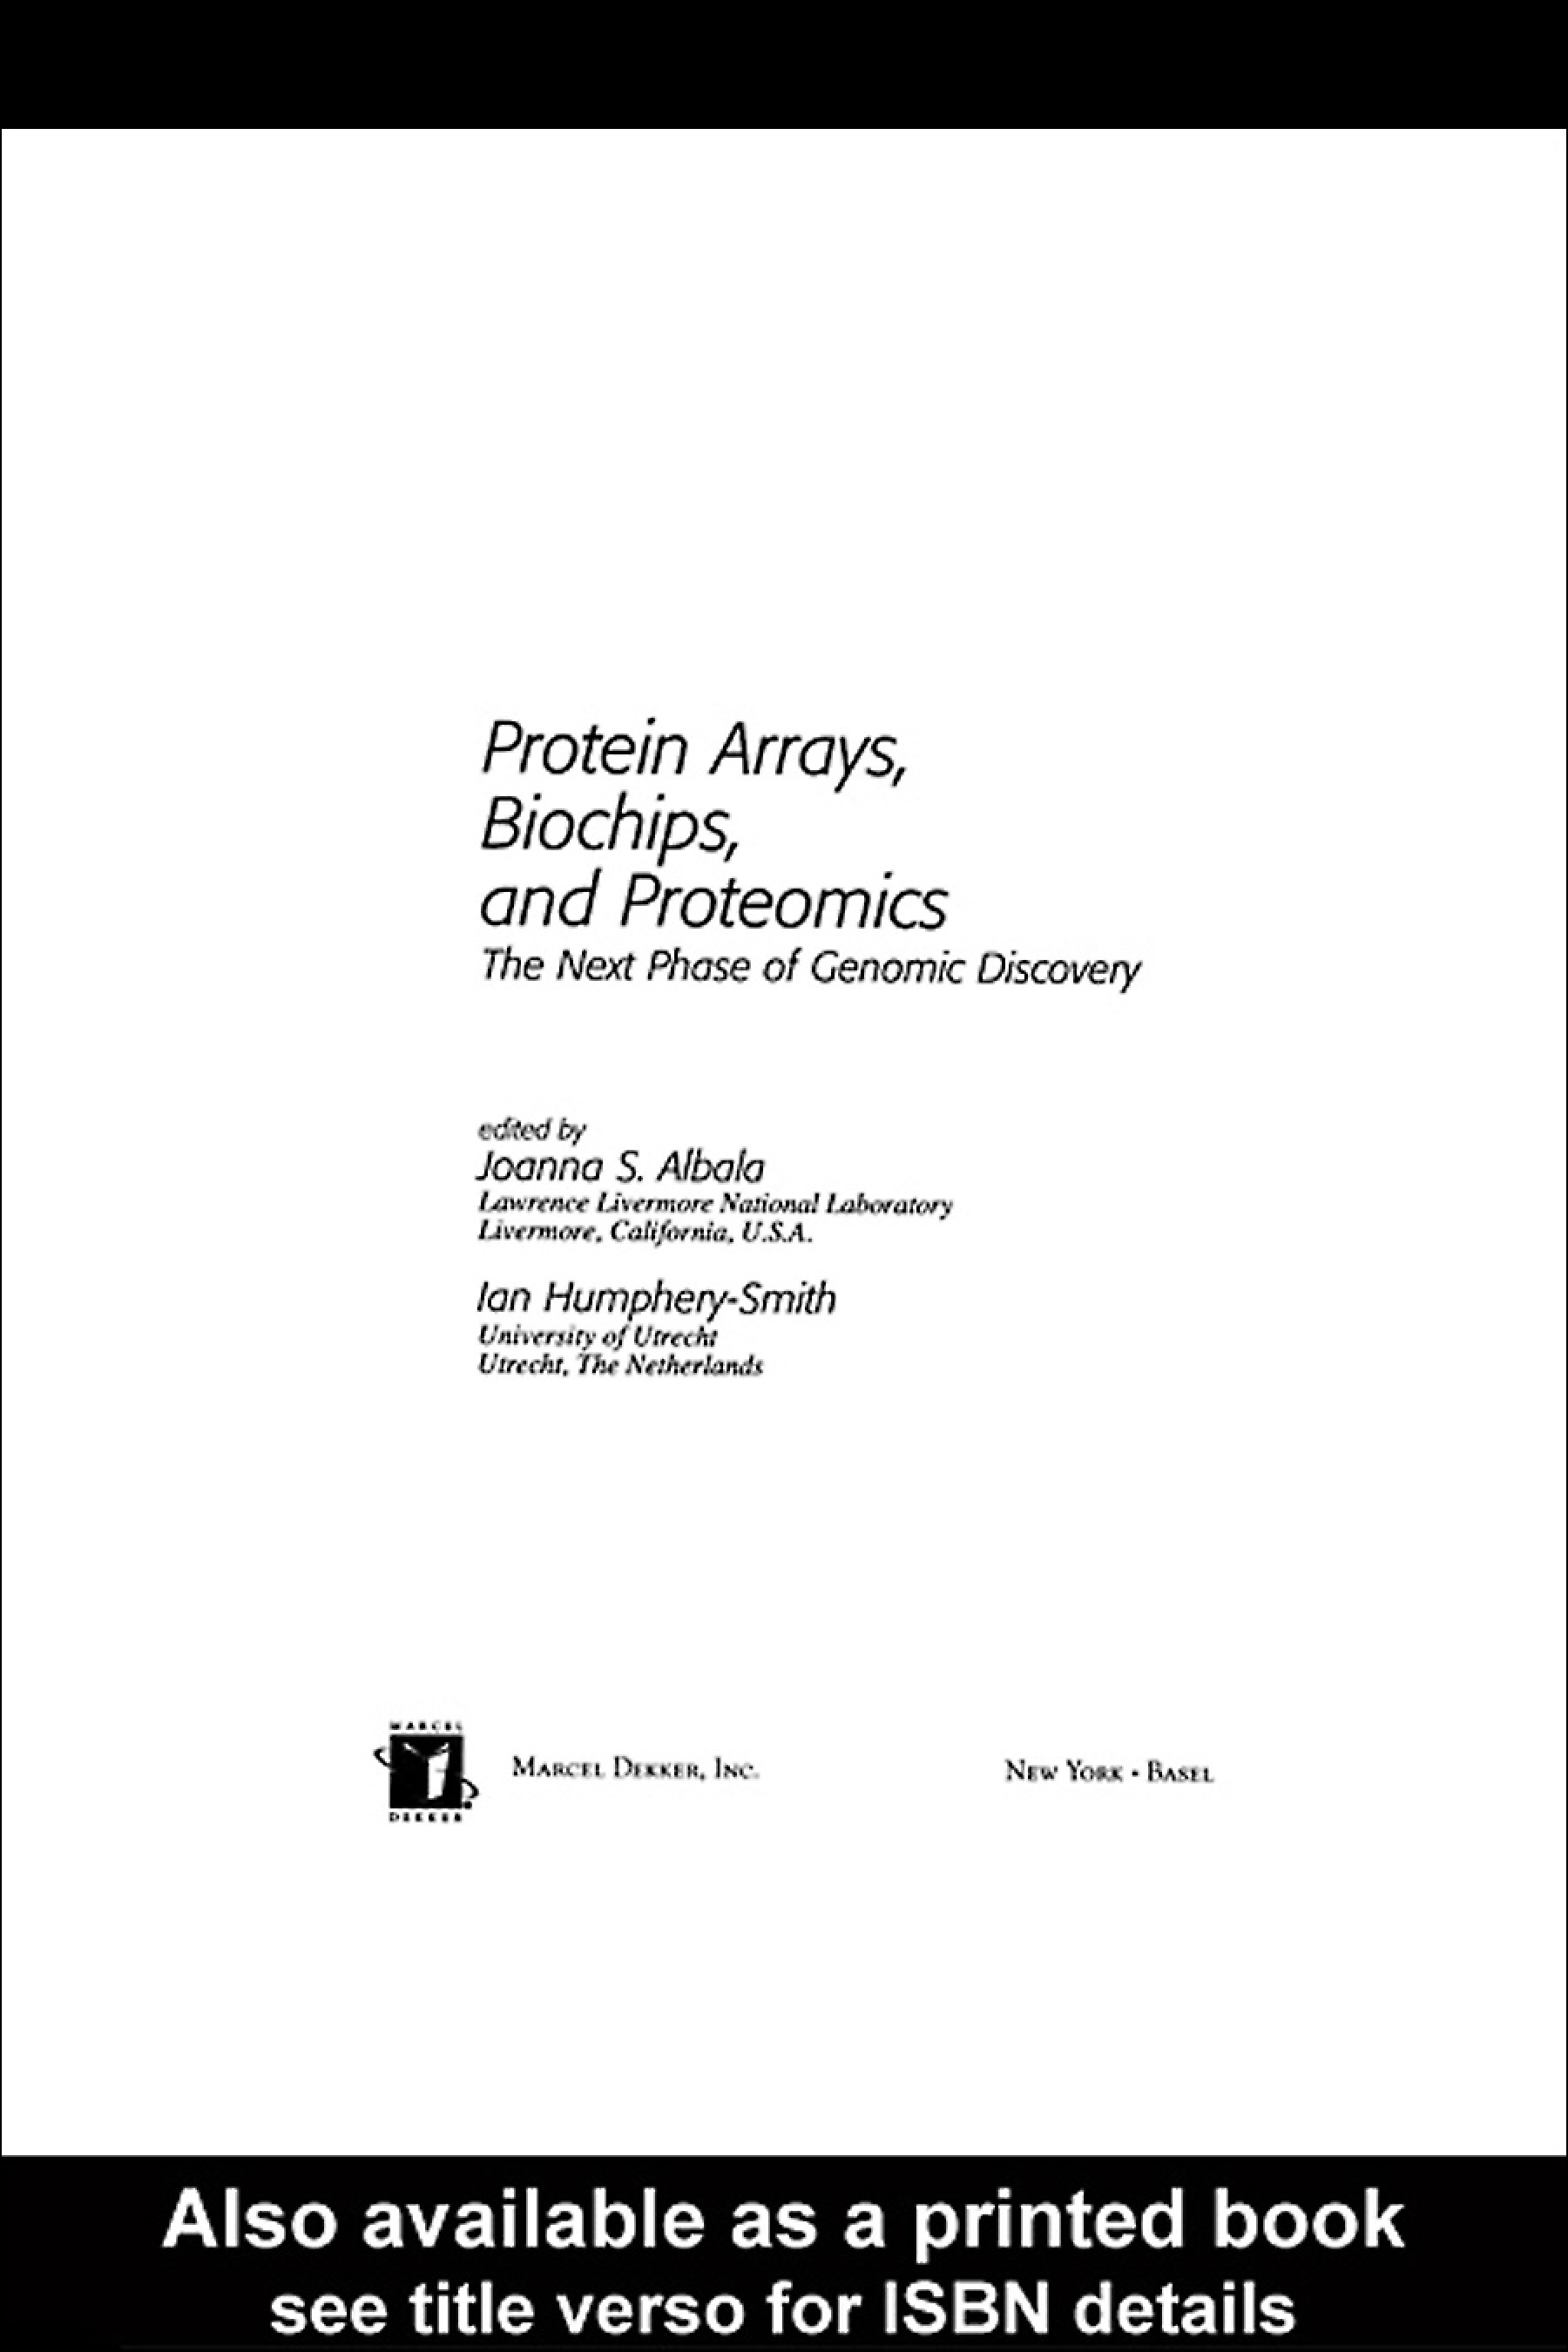 Protein Arrays, Biochips and Proteomics